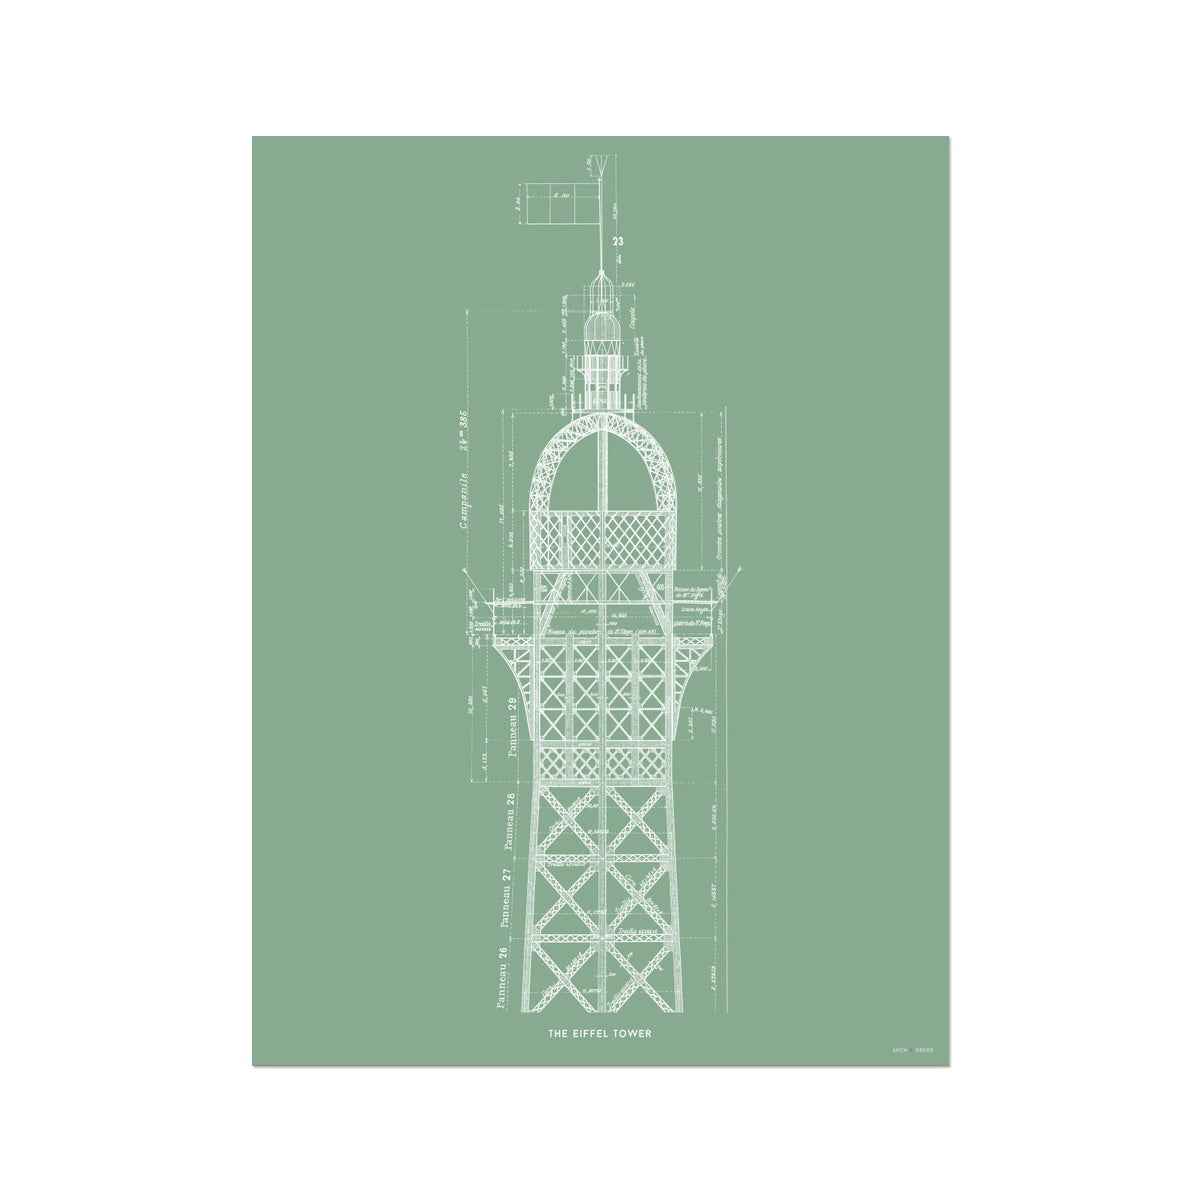 The Eiffel Tower - Top Cross Section - Green -  Etching Paper Print